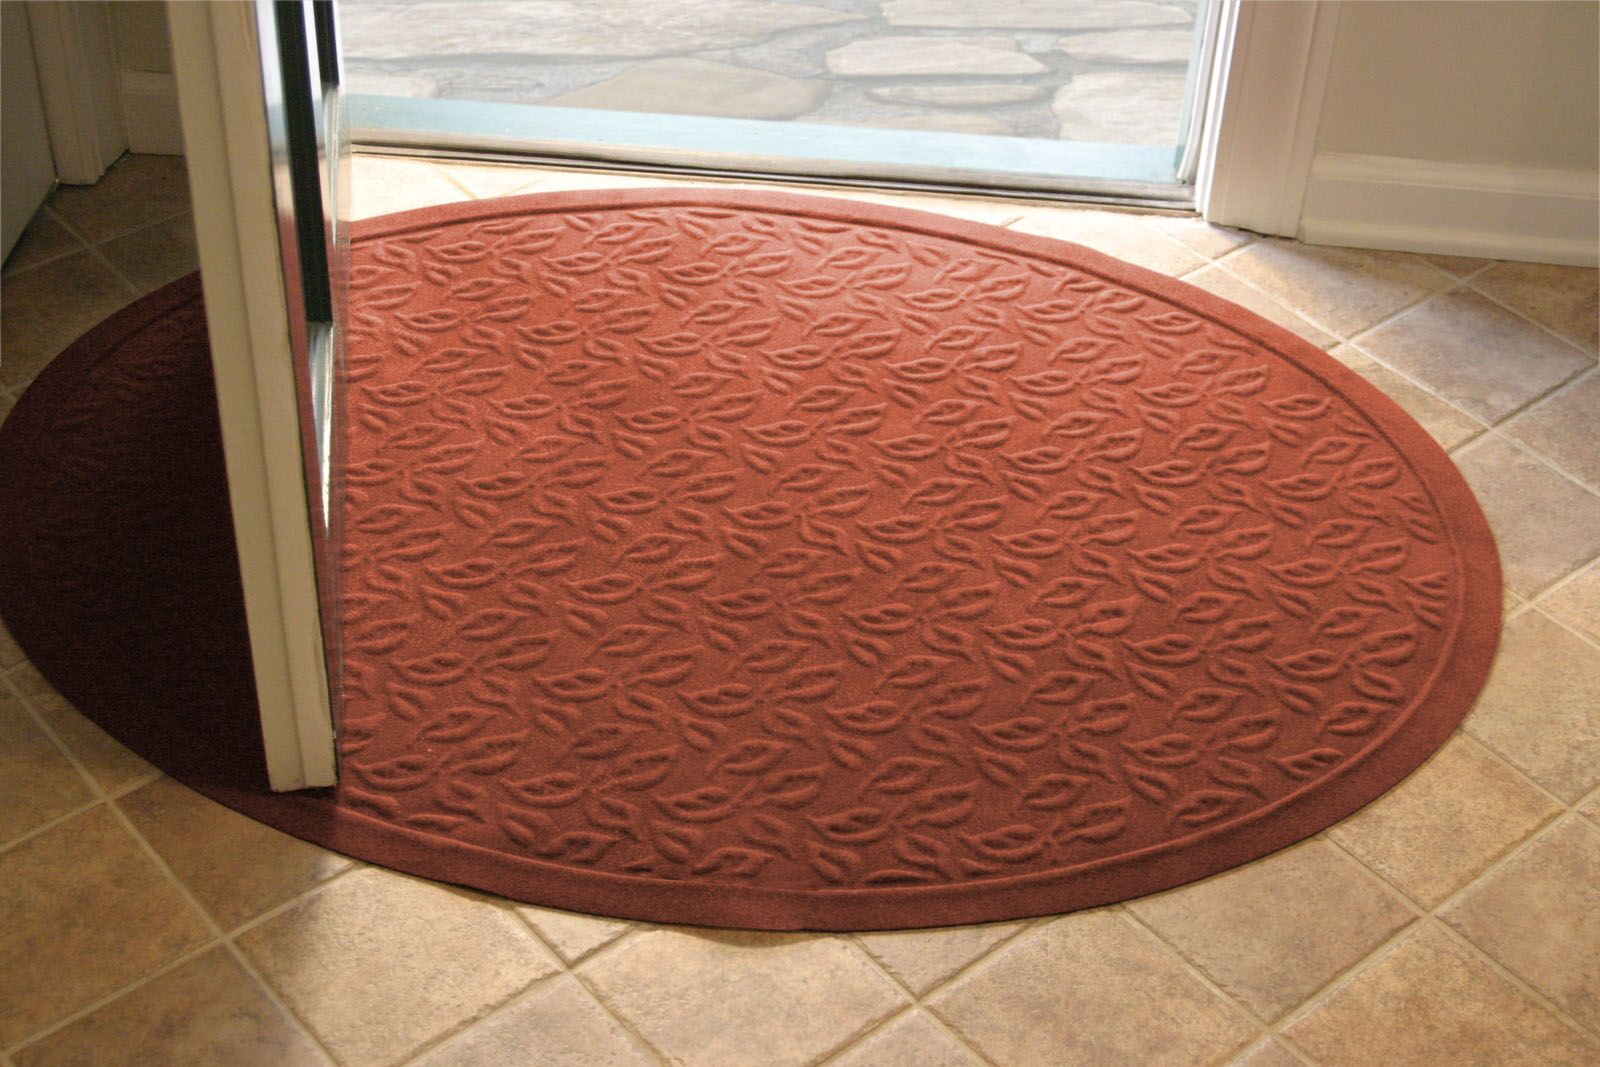 Soft Impressions Dogwood Leaf Doormat Mat Size: Oval 3' x 4', Color: Montego Pepper